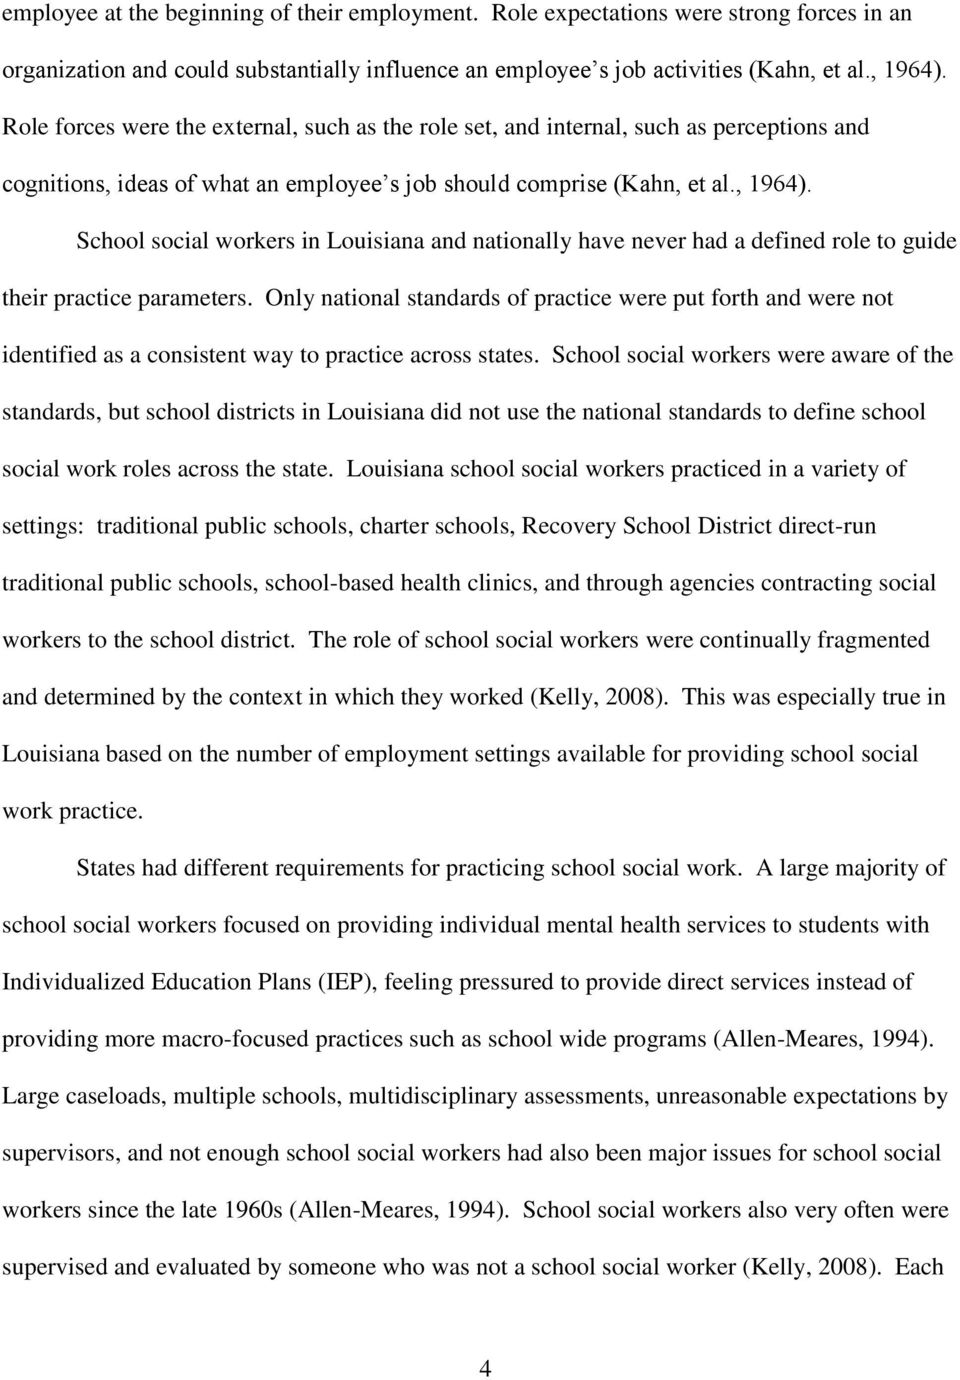 School social workers in Louisiana and nationally have never had a defined role to guide their practice parameters.